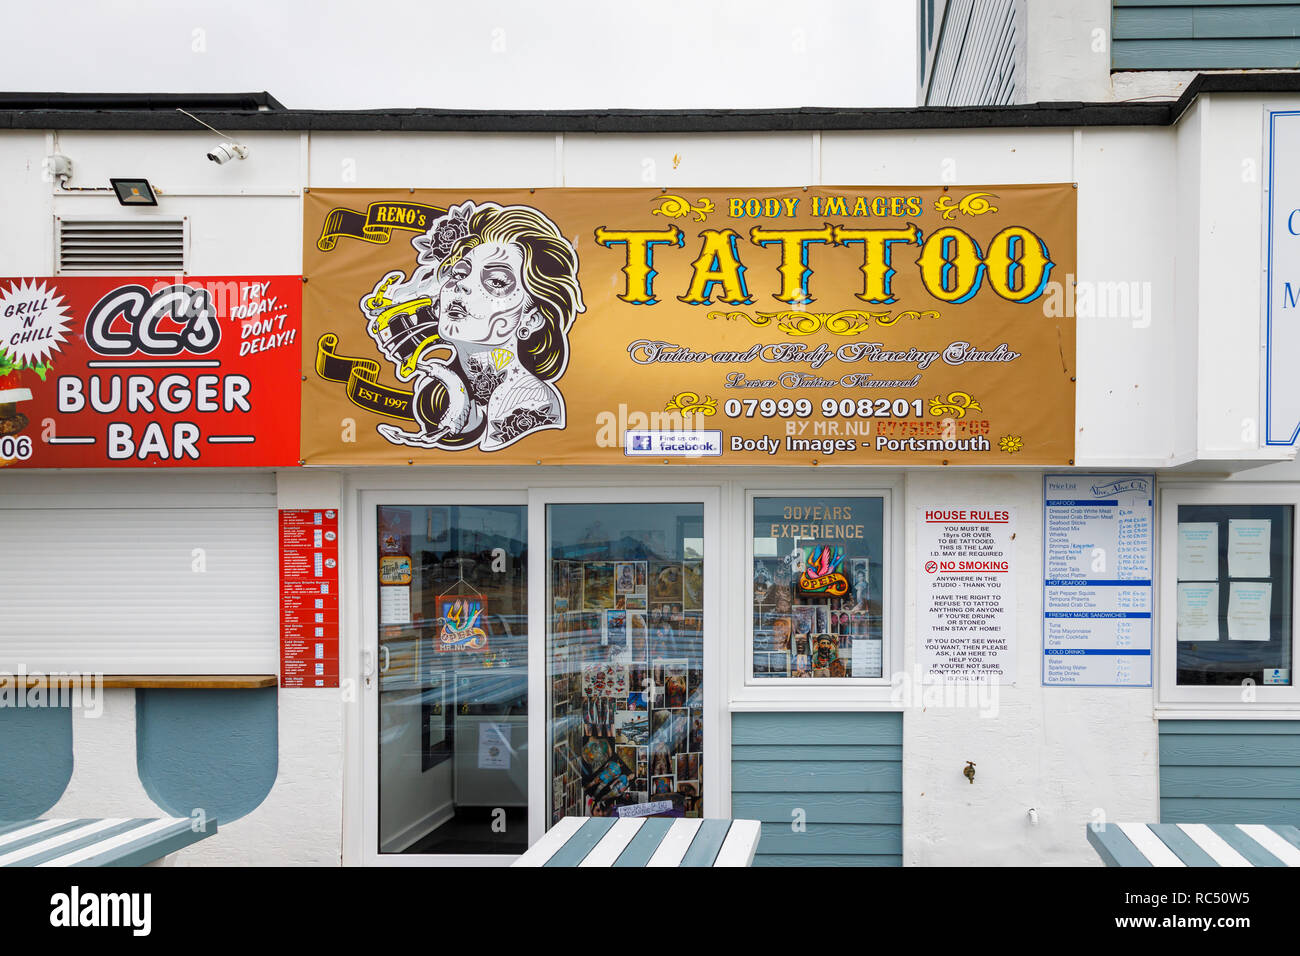 Body Images tattoo and body piercing studio for body art on South Parade Pier, Southsea, Portsmouth, south coast England, UK - Stock Image